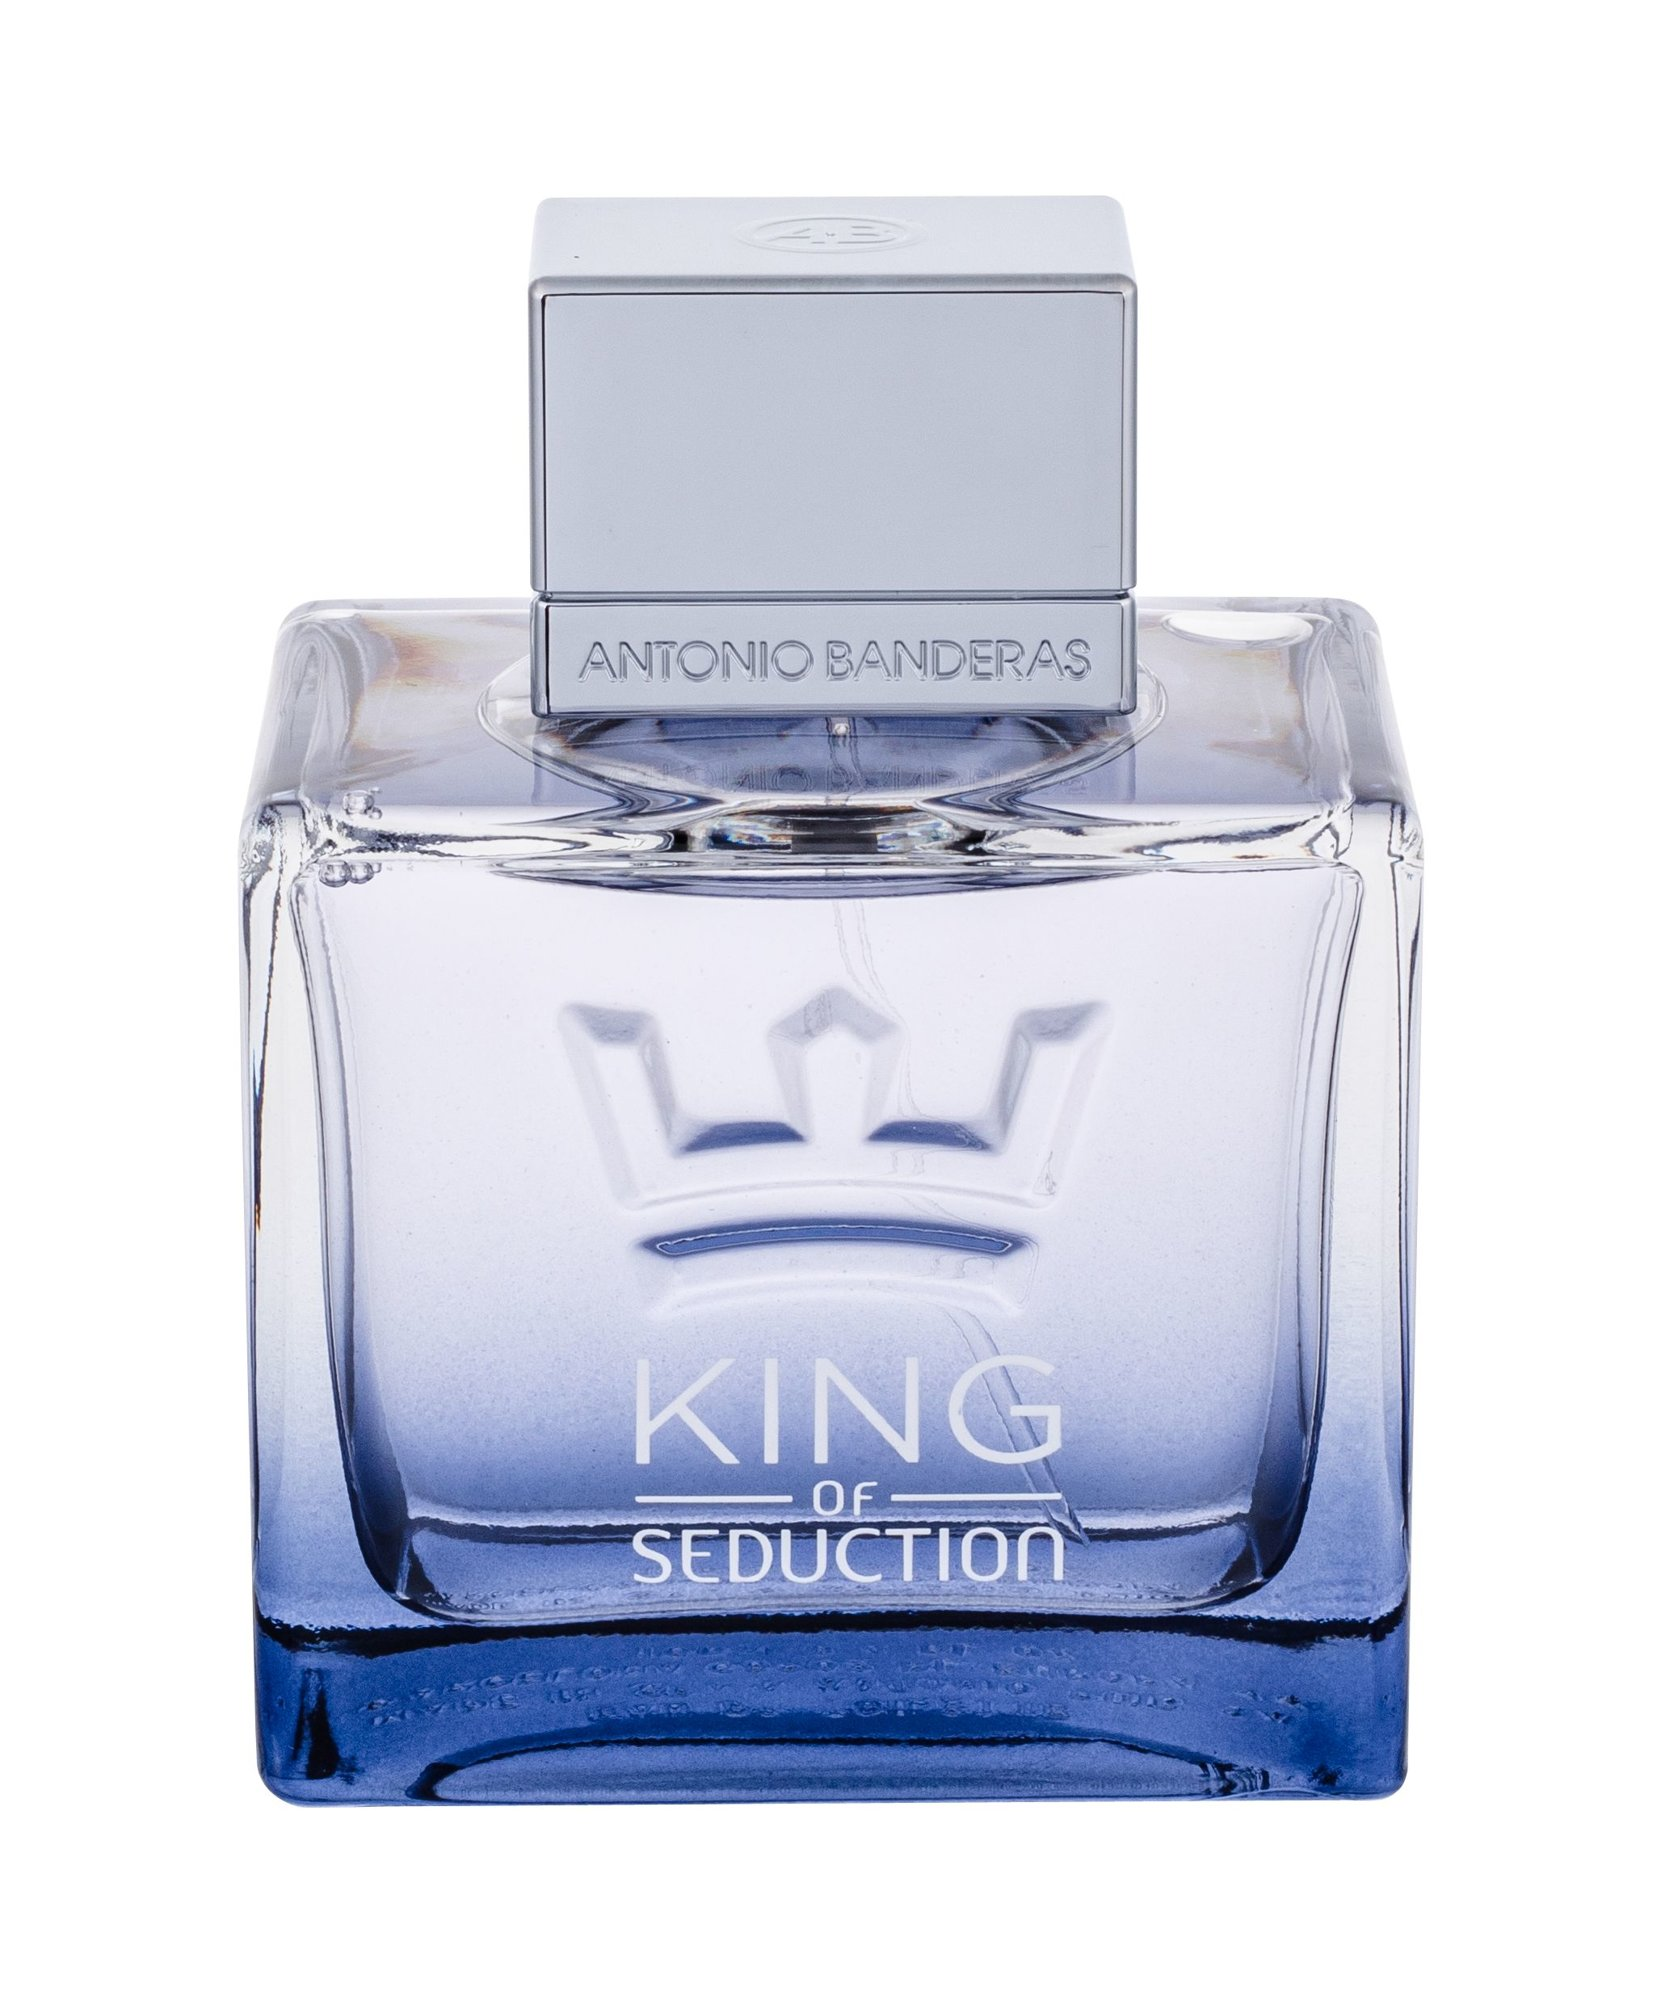 Antonio Banderas King of Seduction EDT 100ml